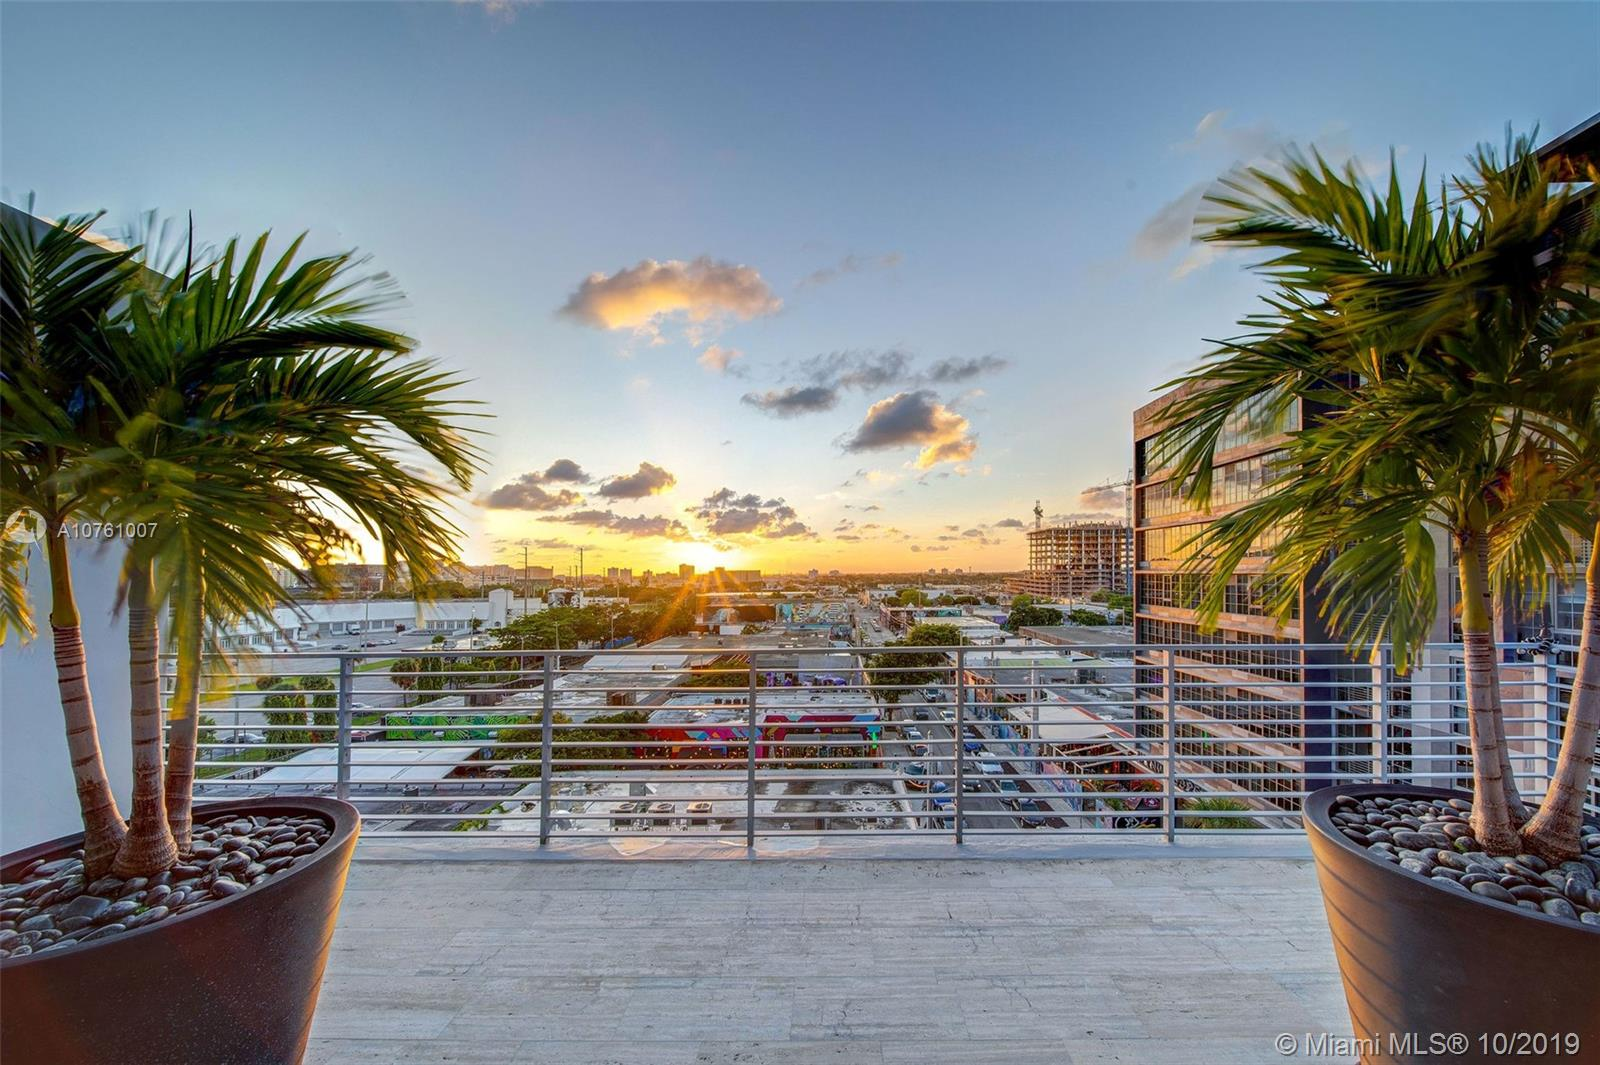 250 24th st-PH-A miami-fl-33127-a10761007-Pic47